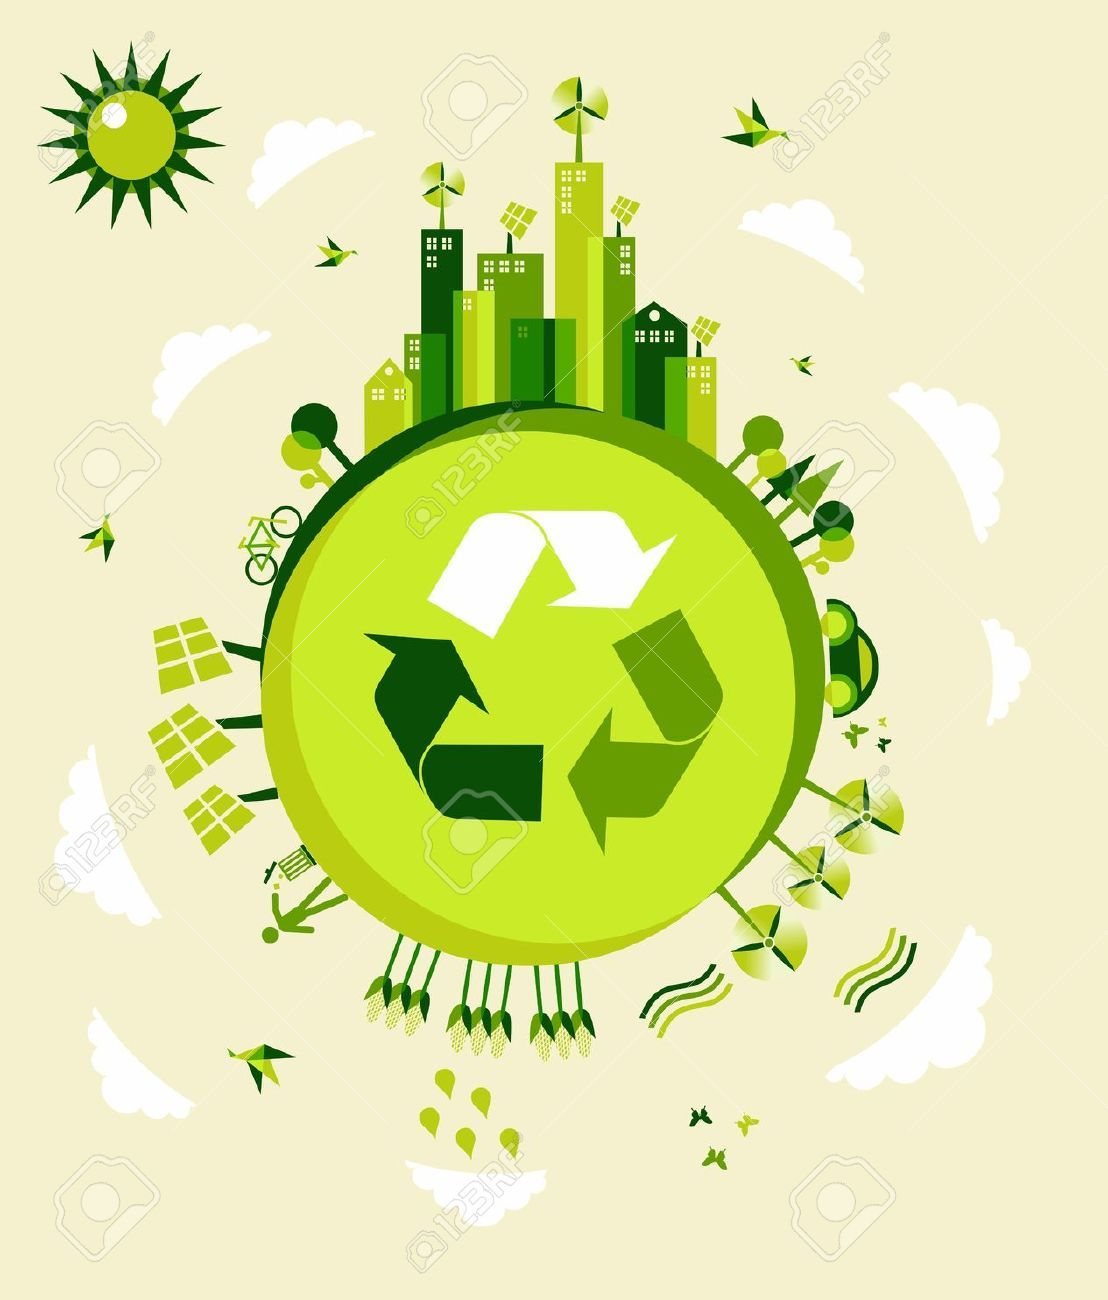 Environment clipart sustainable. Stock vector architechture in